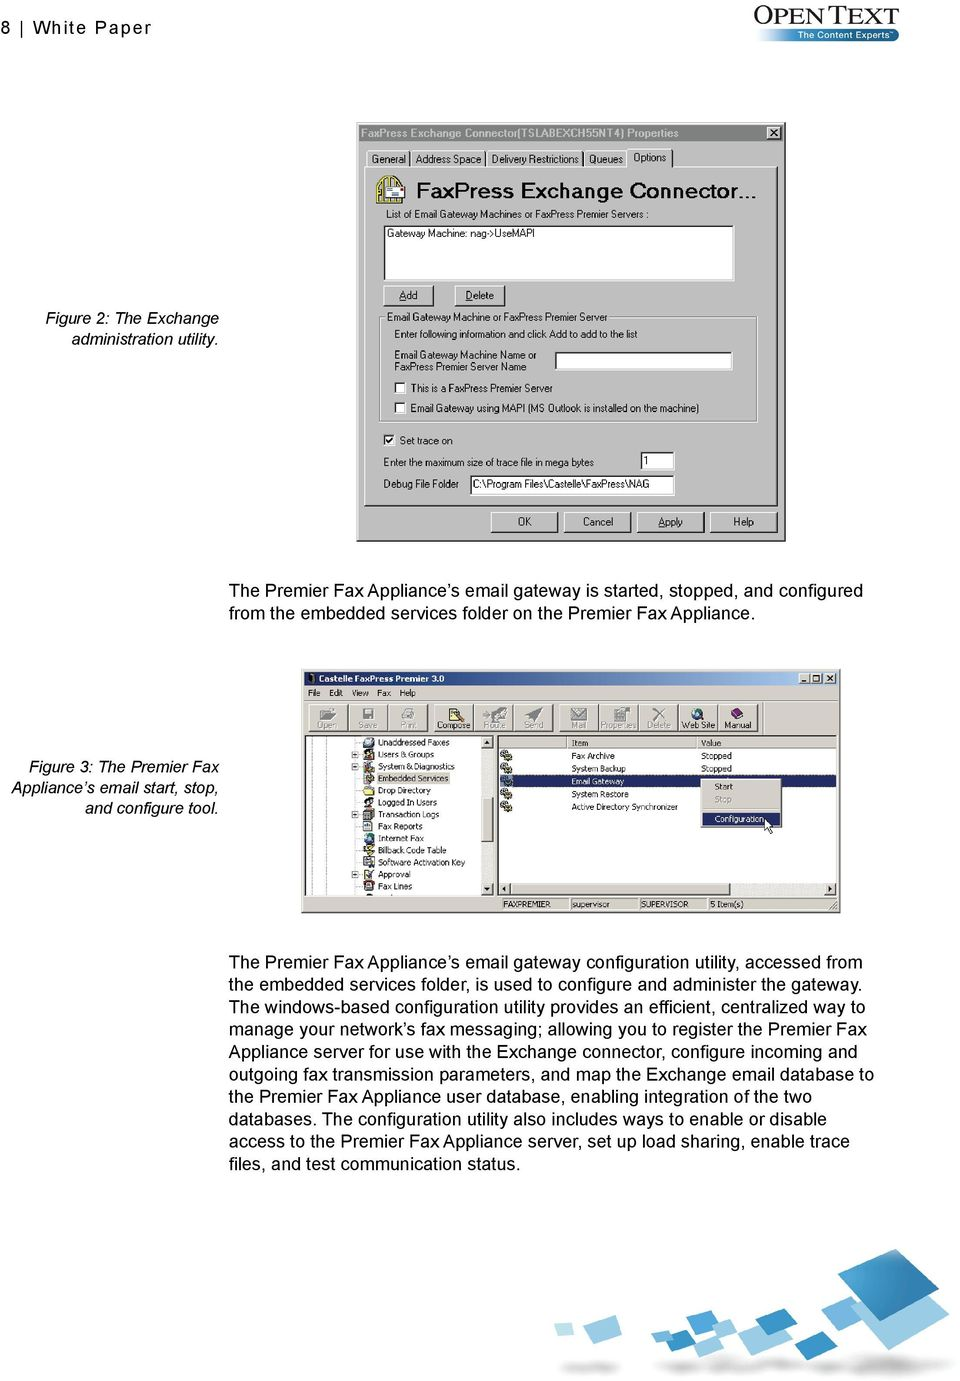 Figure 3: The Premier Fax Appliance s email start, stop, and configure tool.